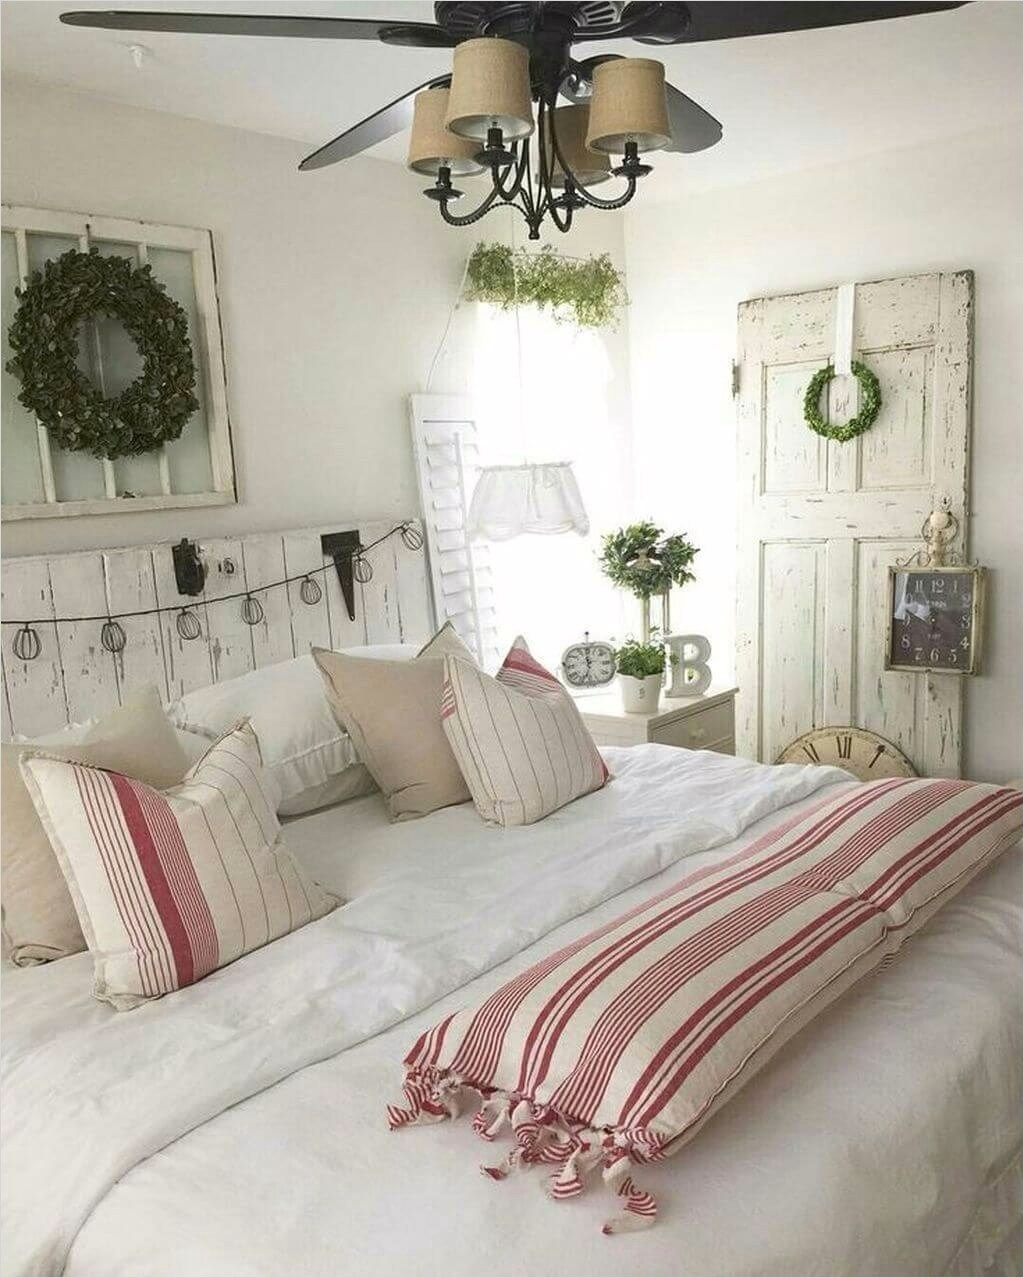 43 Stunning Country Farmhouse Bedroom Ideas 29 30 Best French Country Bedroom Decor A Farmhouse Chic Bedroom French Country Decorating Bedroom Tranquil Bedroom